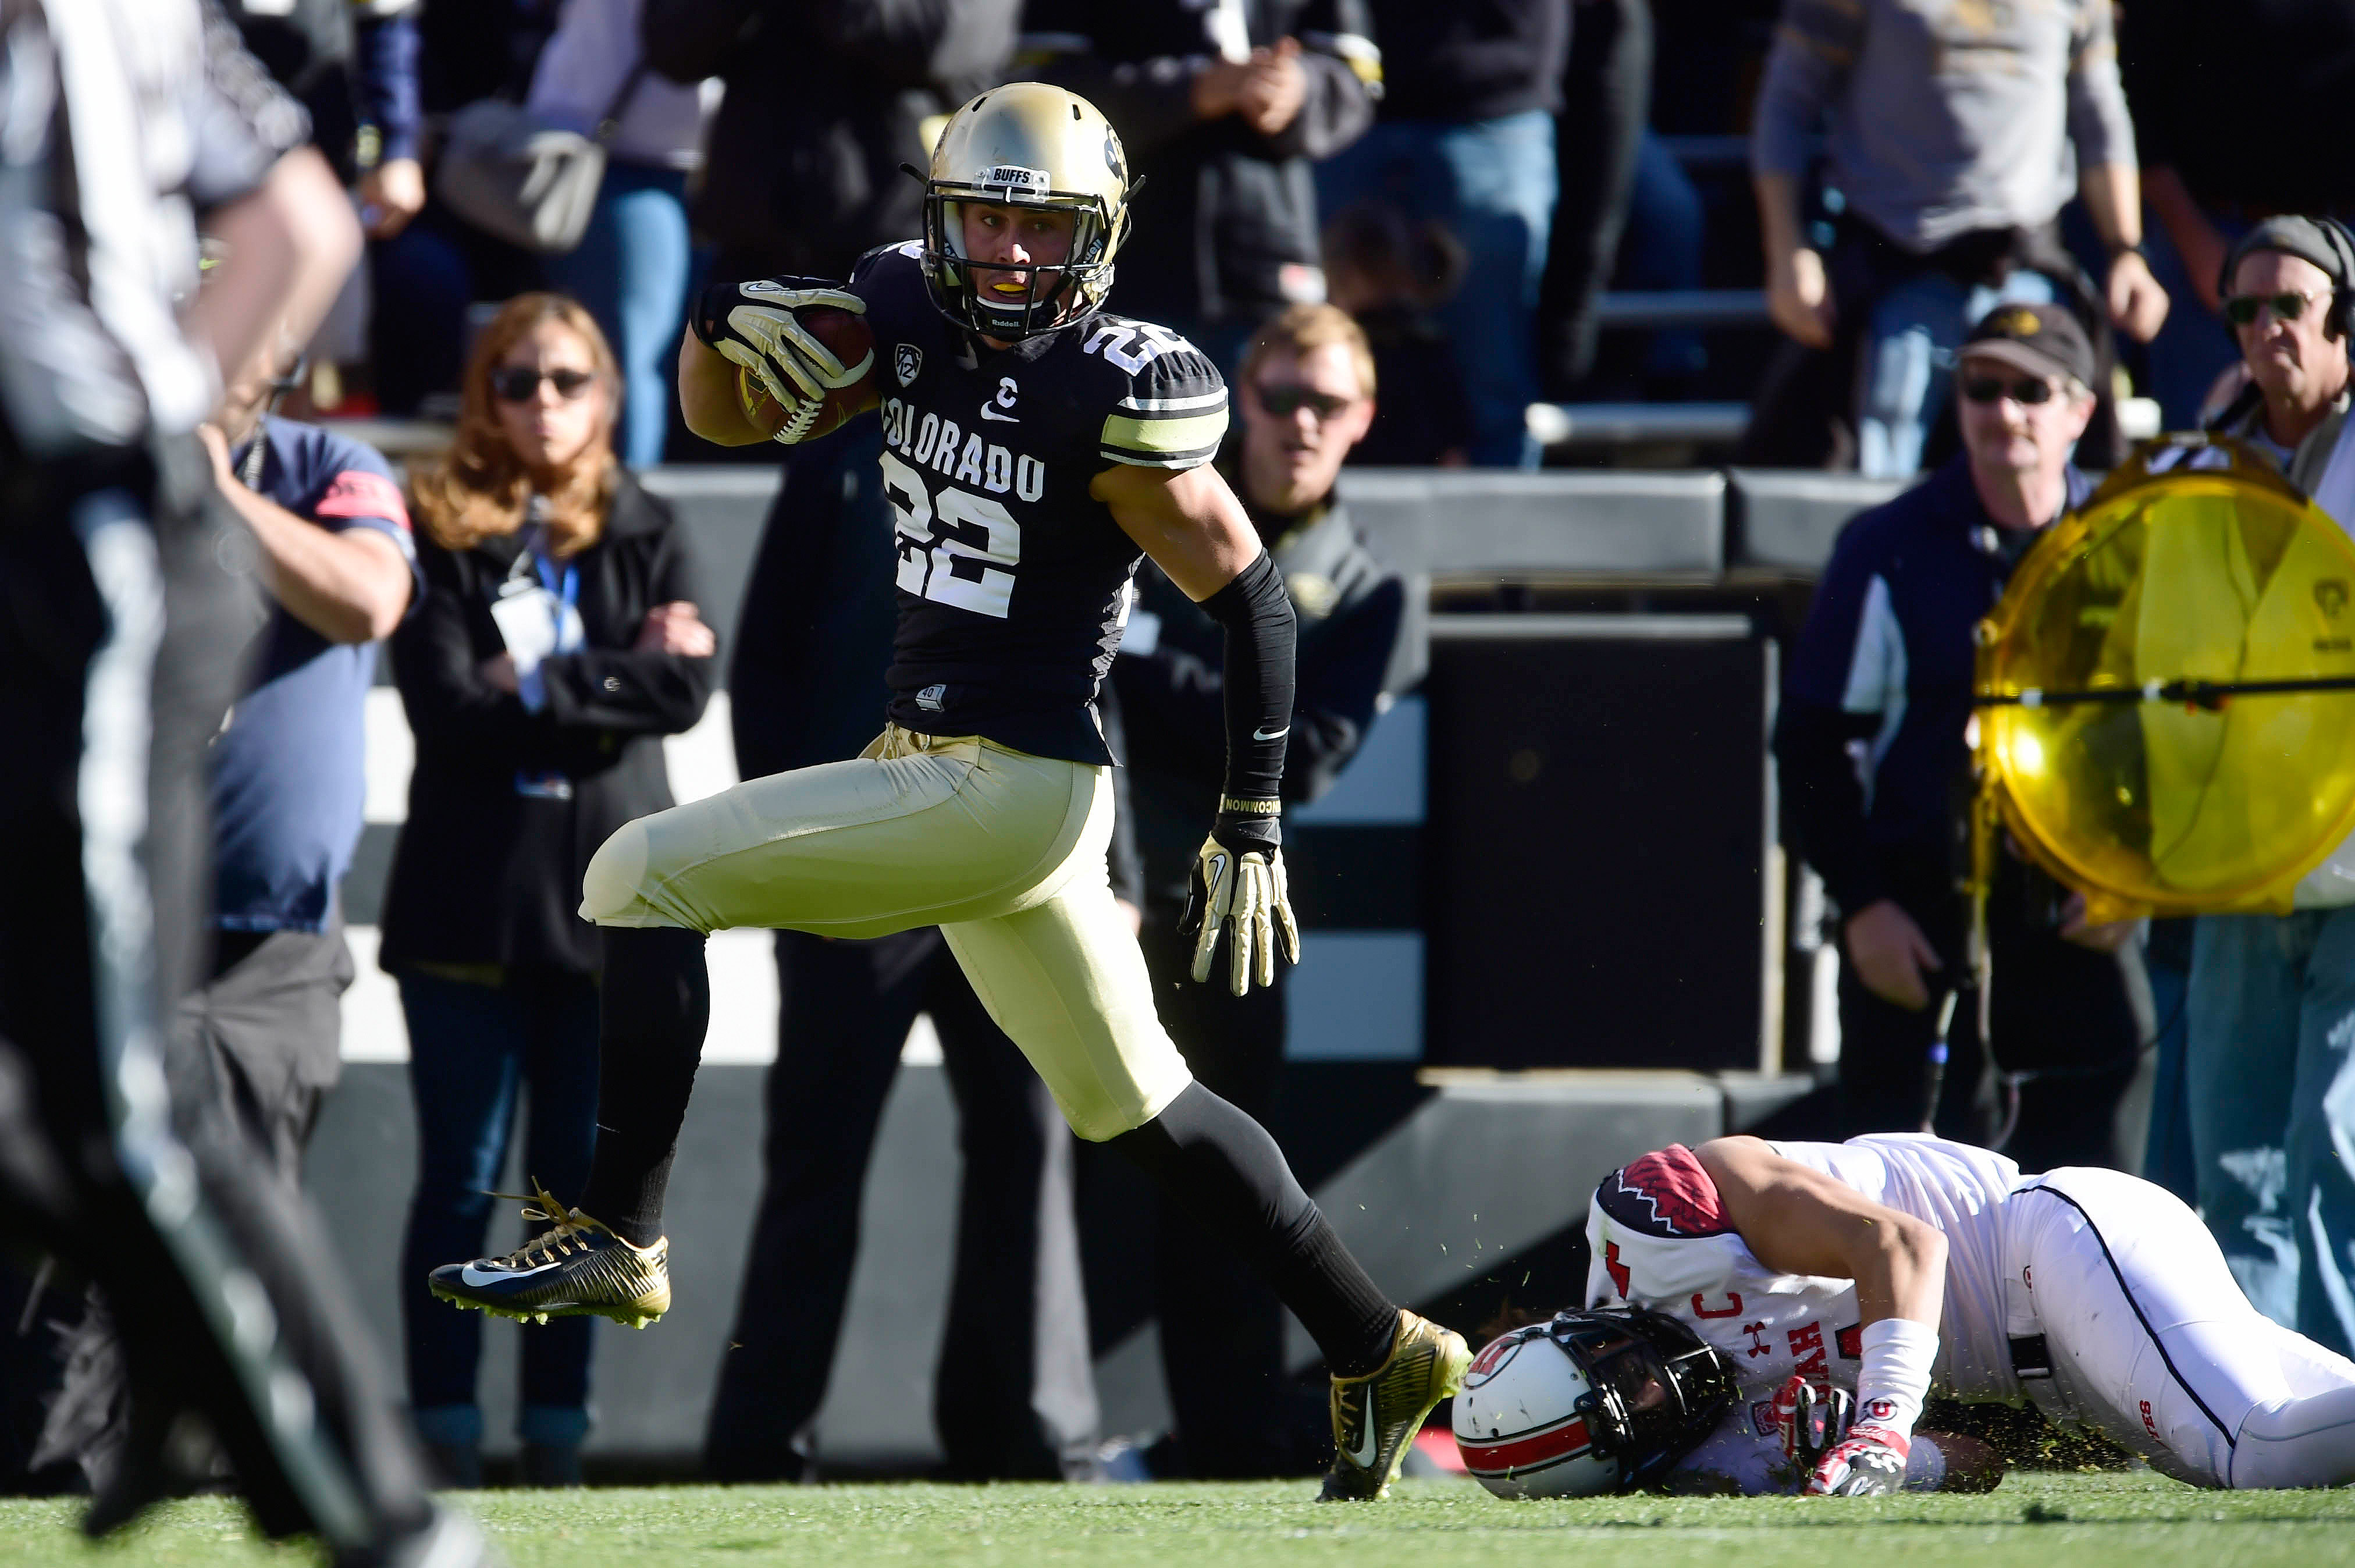 Nelson Spruce led the Pac-12 conference in catches in 2014